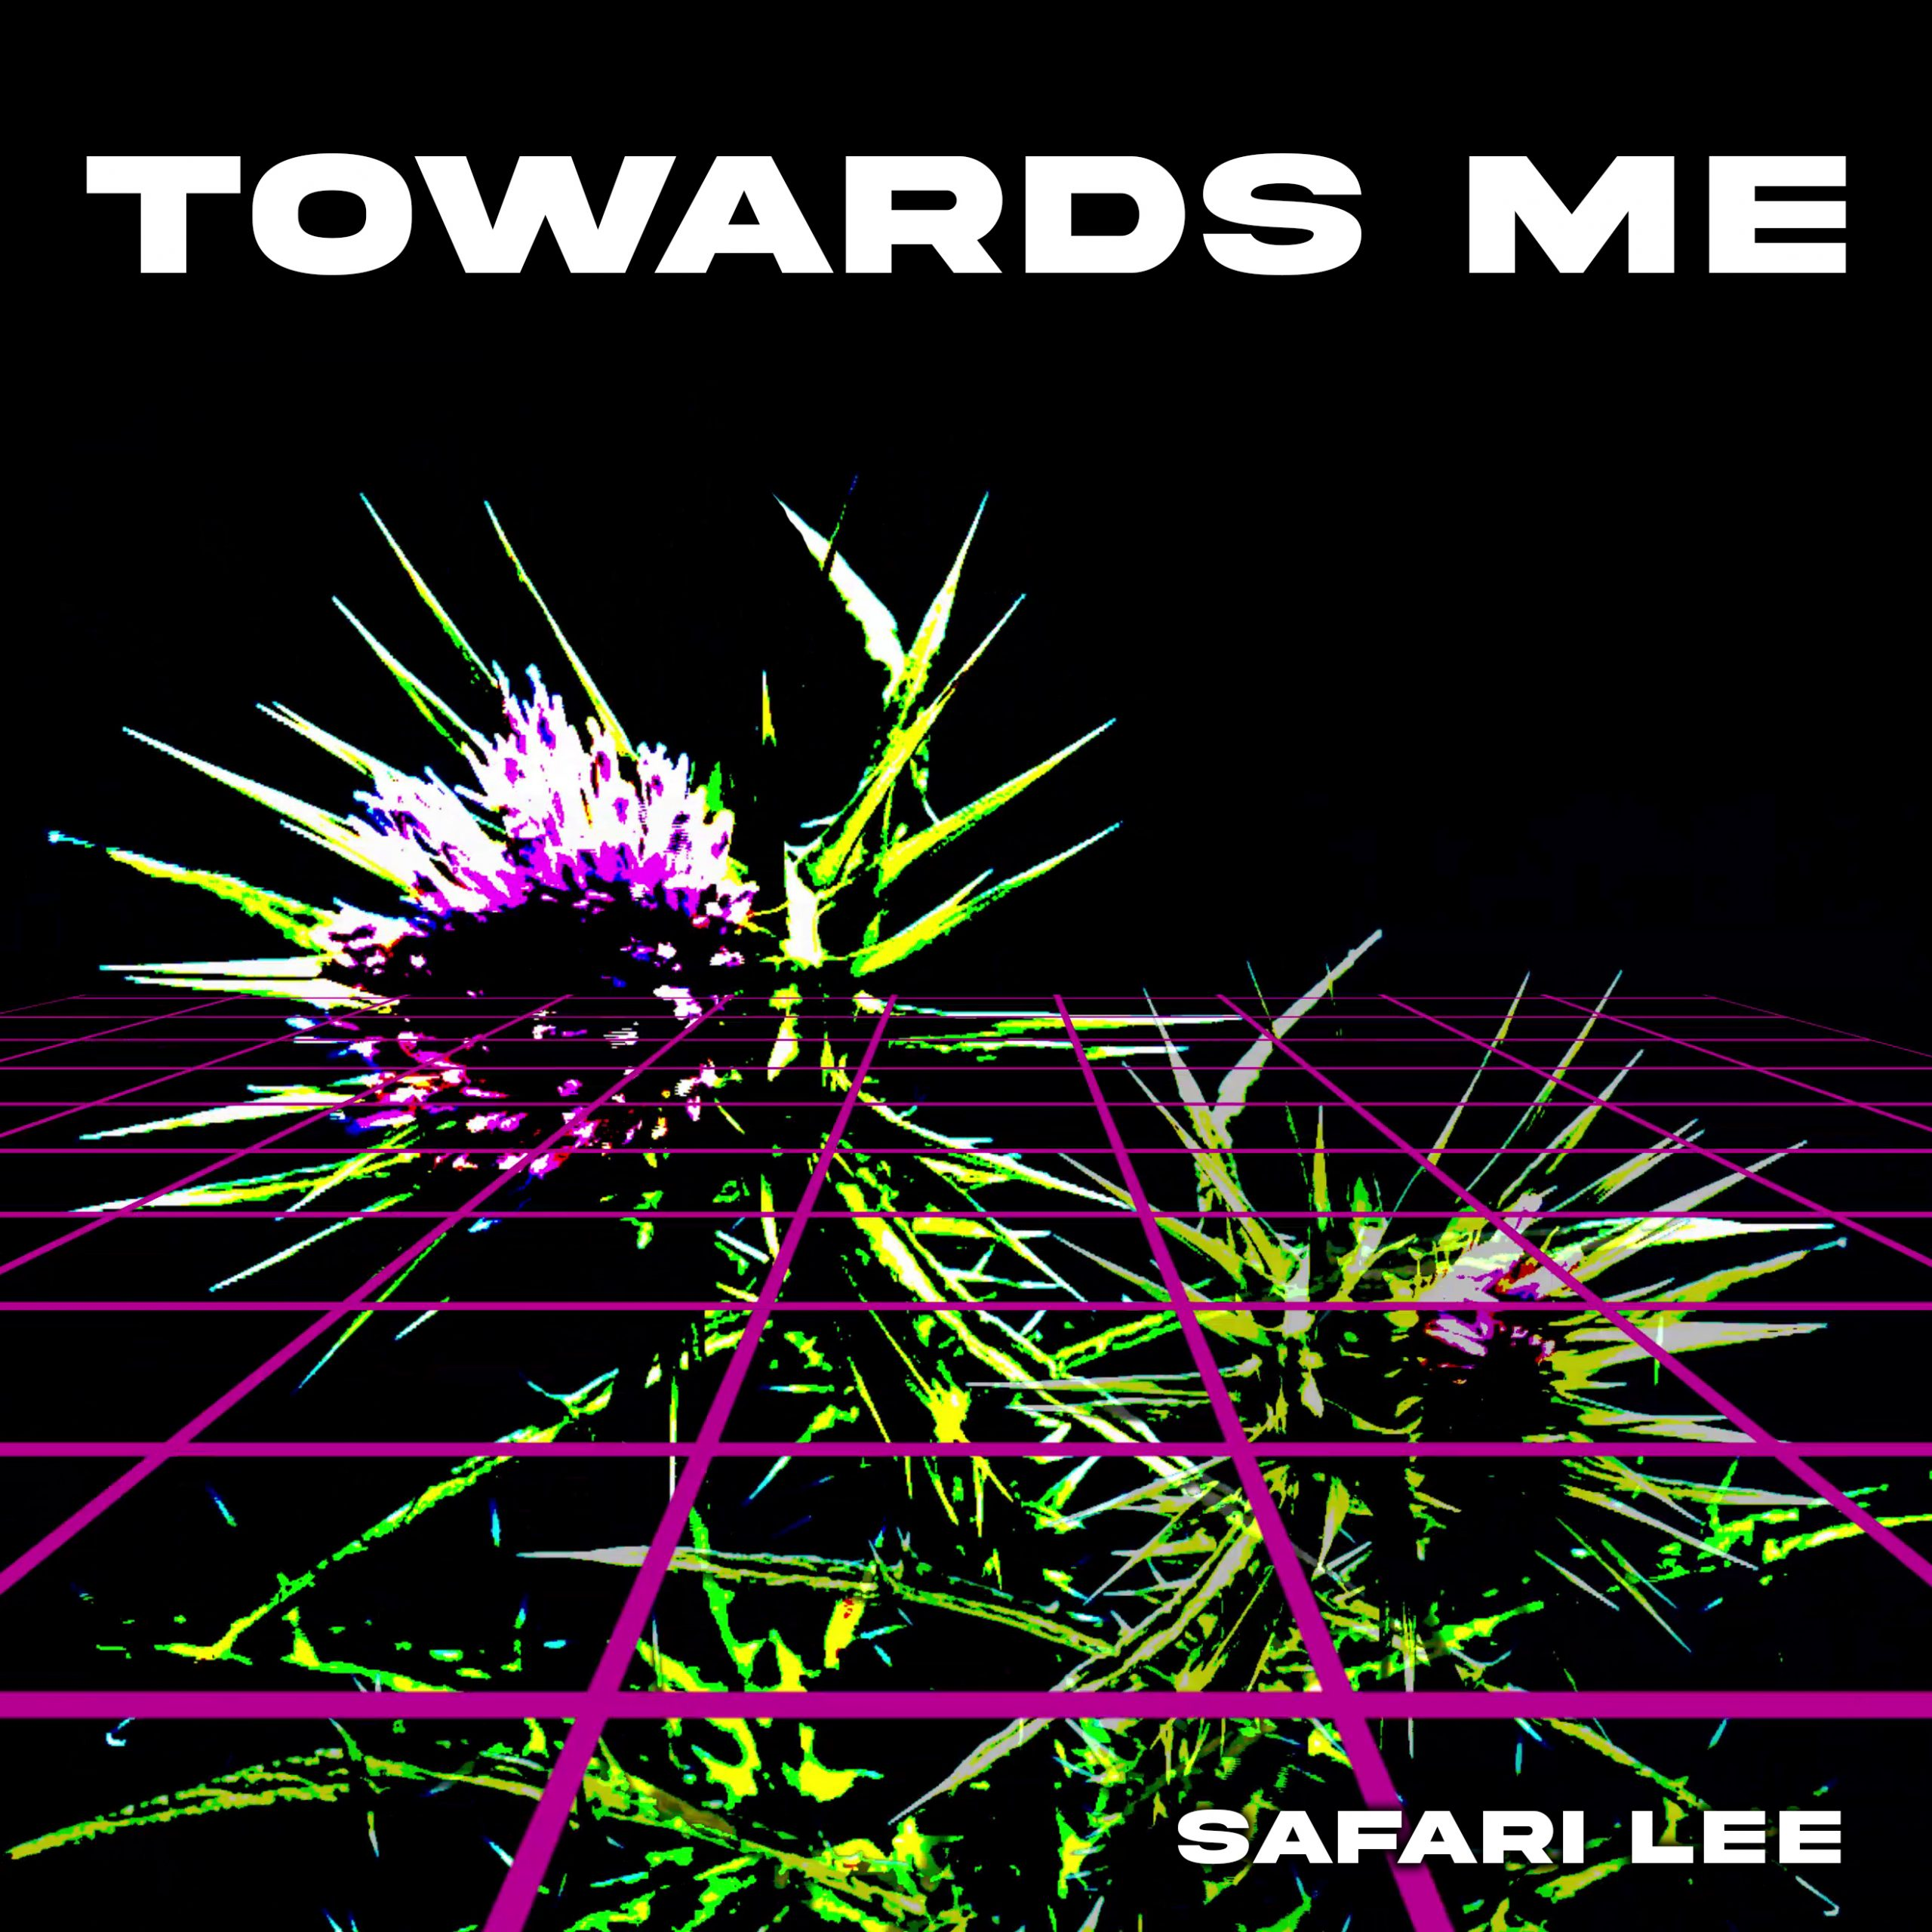 Towards Me - plant cover of single